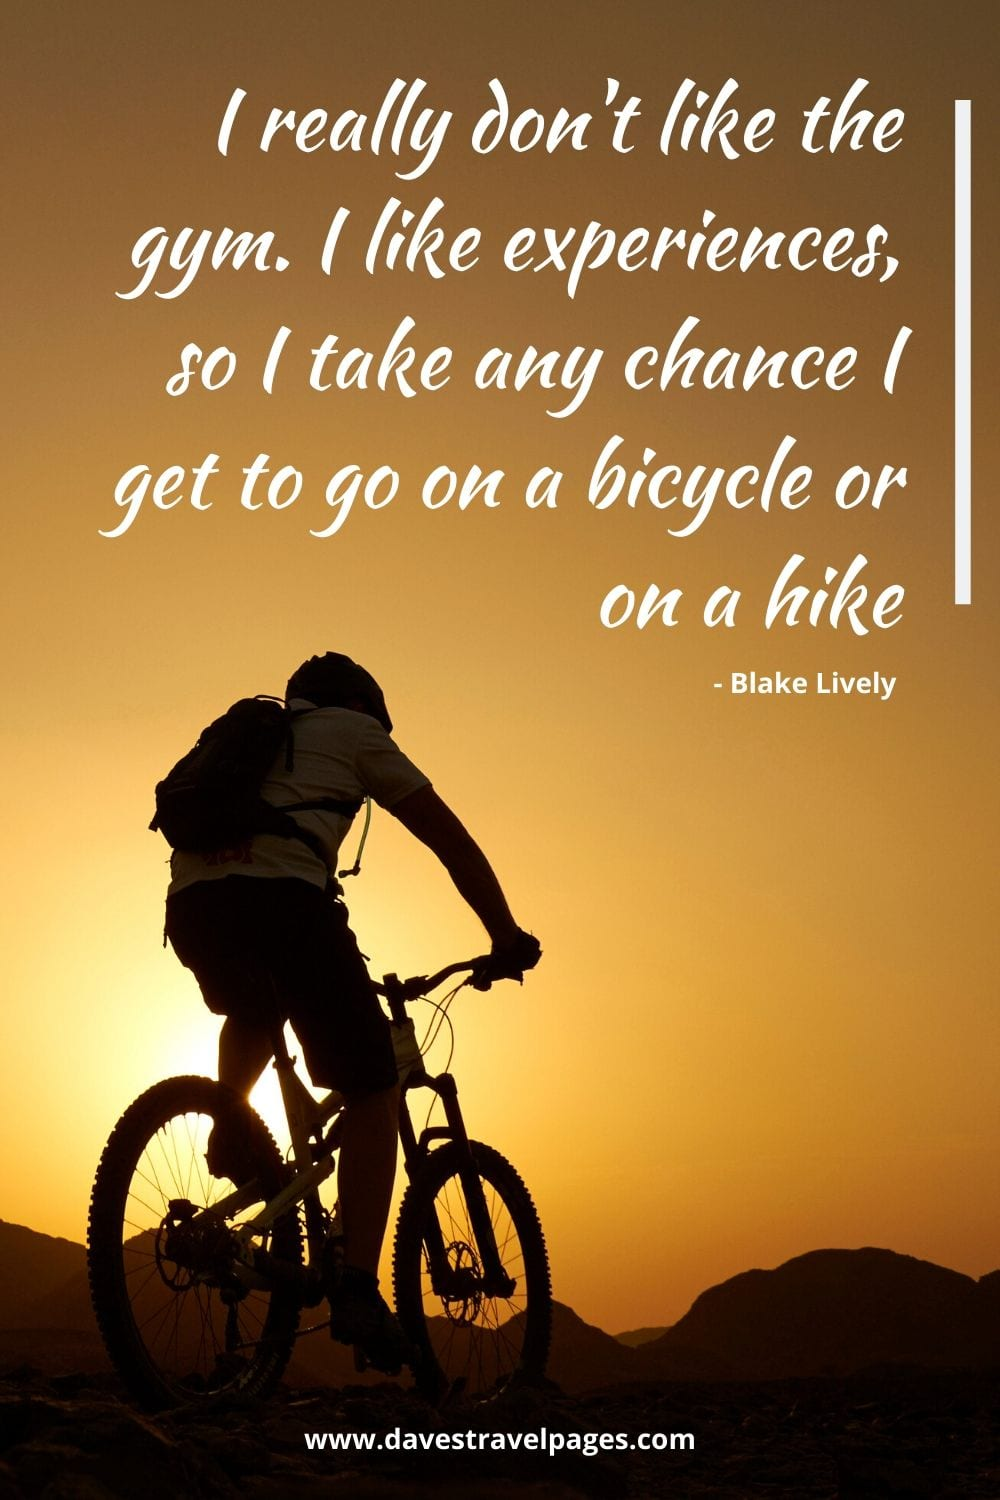 Bicycling Quotes - I really don't like the gym. I like experiences, so I take any chance I get to go on a bicycle or on a hike. Blake Lively